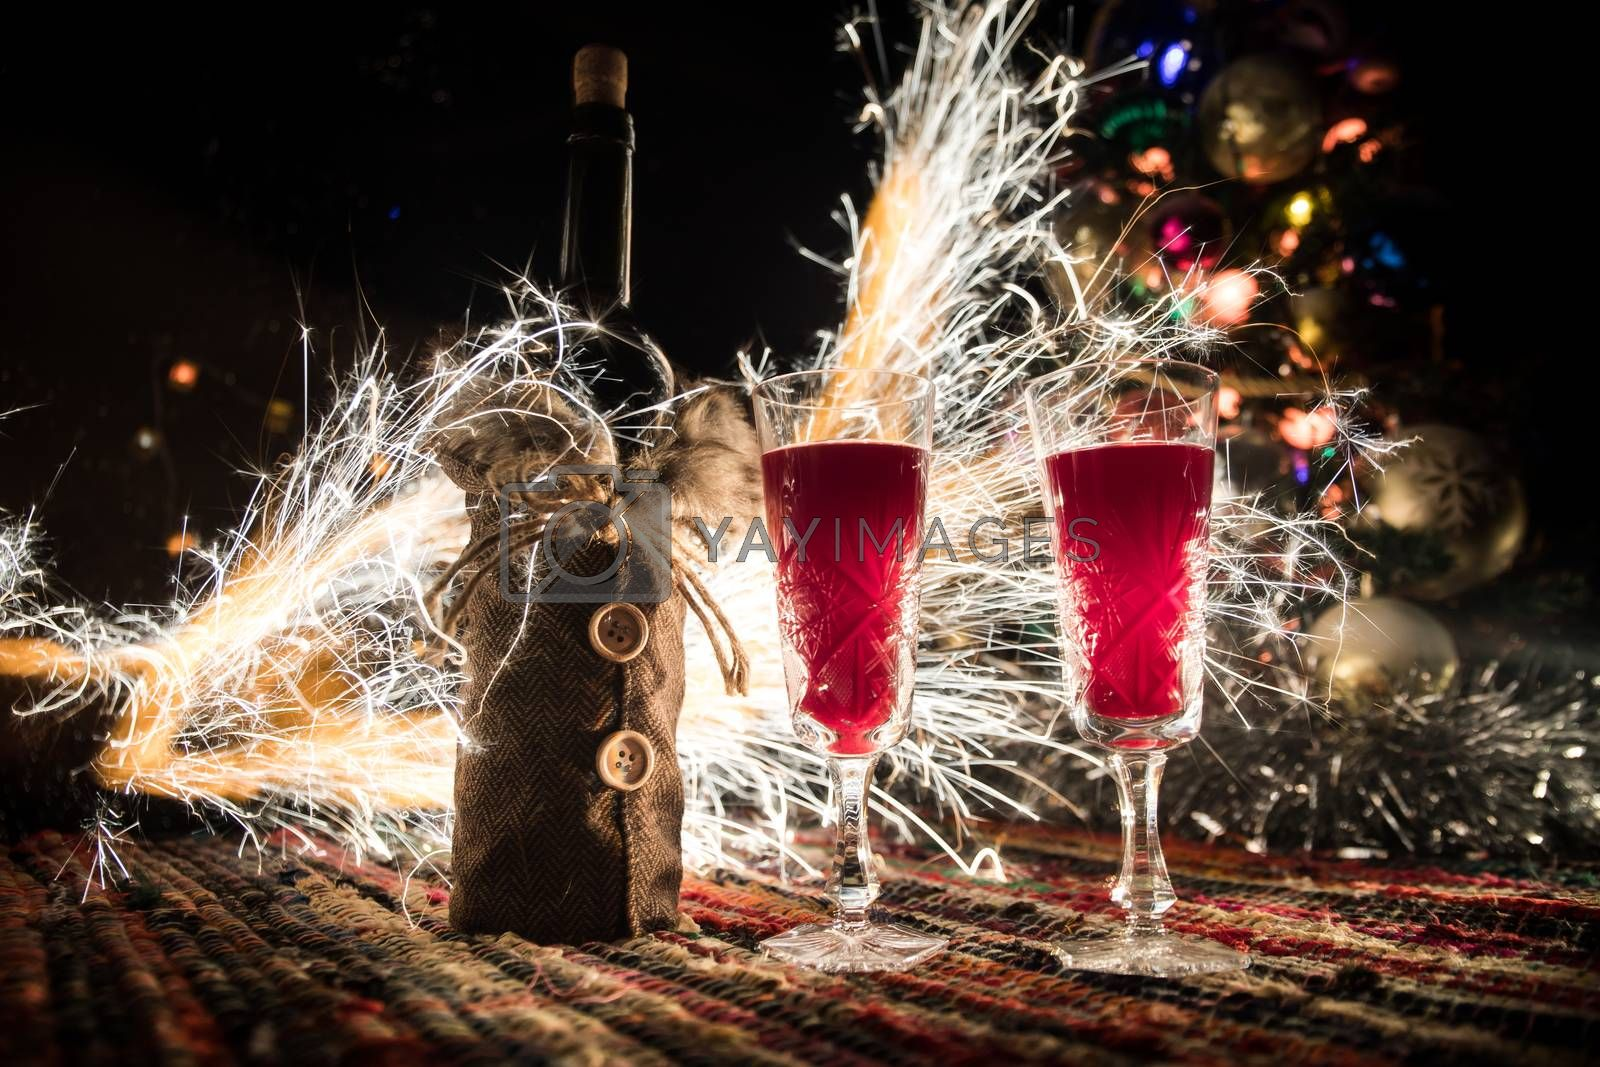 Glass of wine with Christmas decoration. Red wine in crystal glass with bottle on colorful carpet with creative New Year artwork decorations. Copy space